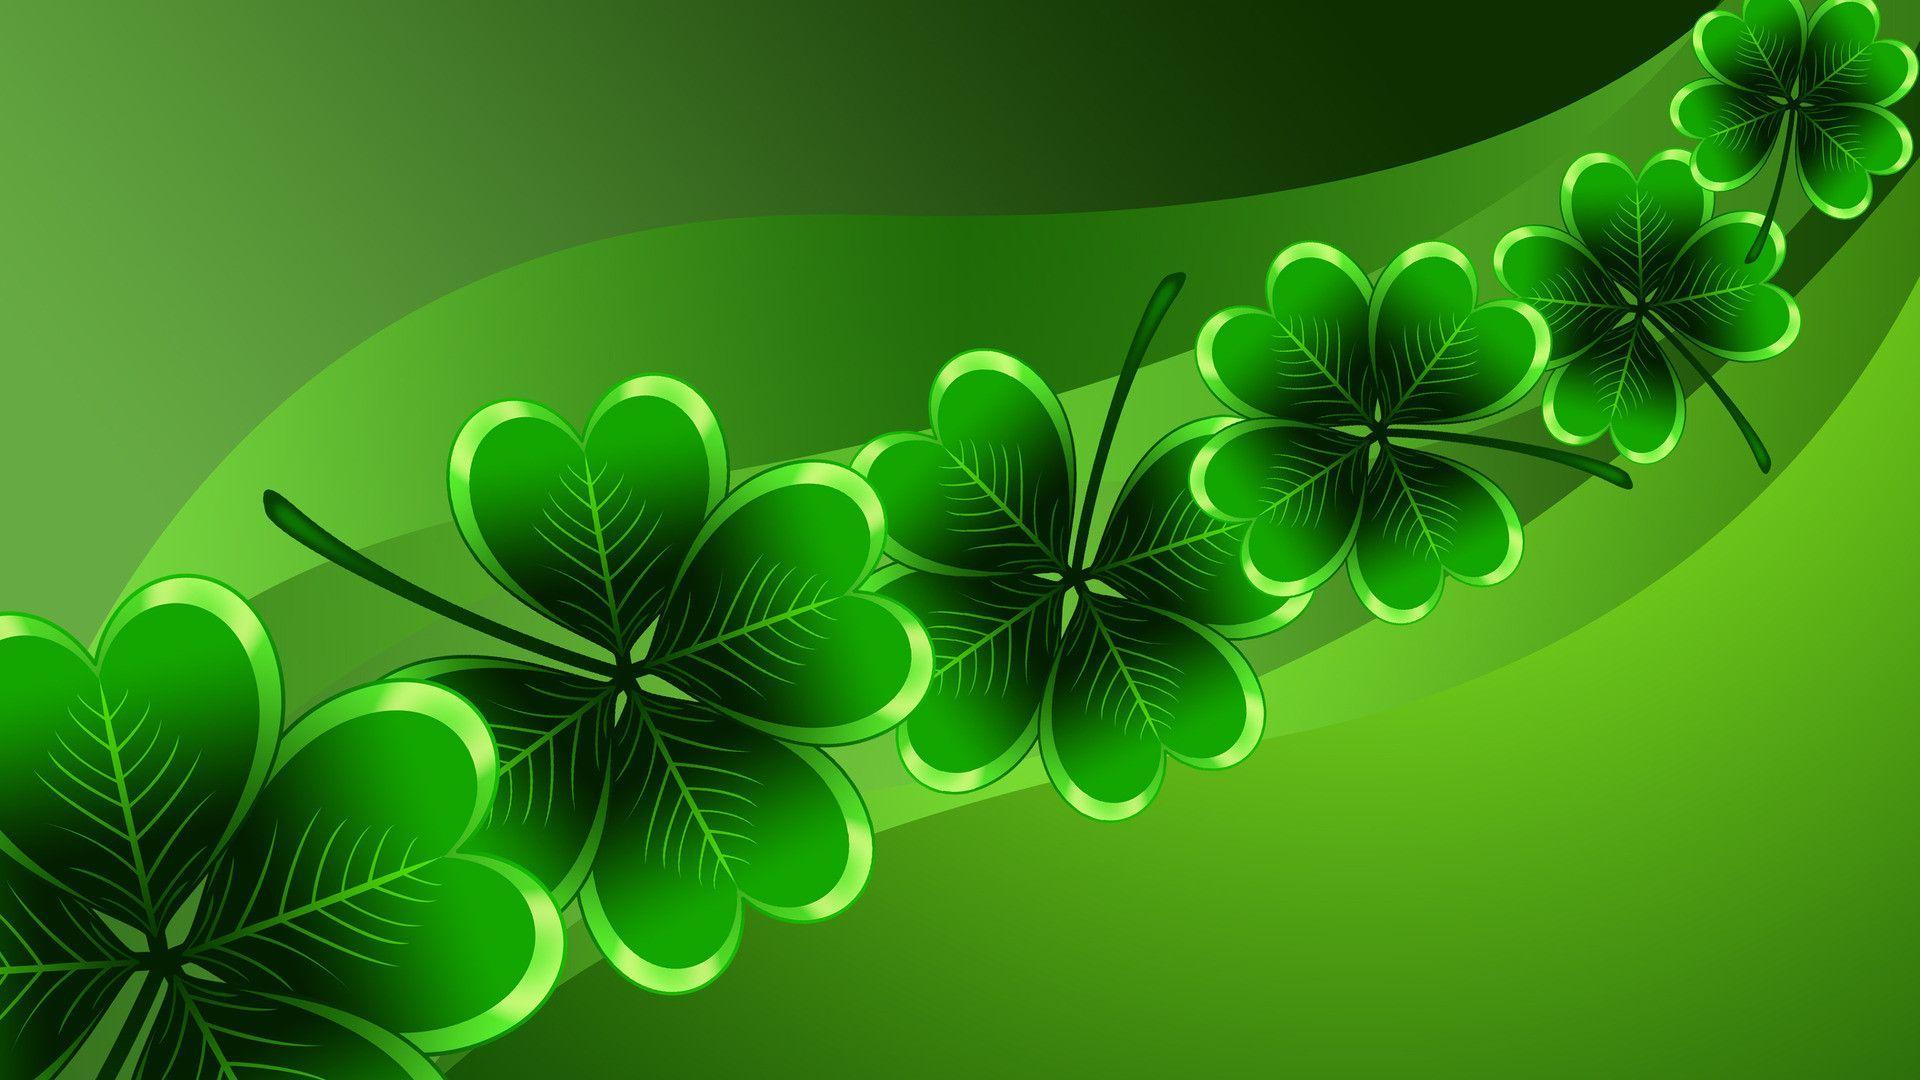 Best 60 St Patricks Day Backgrounds on HipWallpaper Holiday 1920x1080